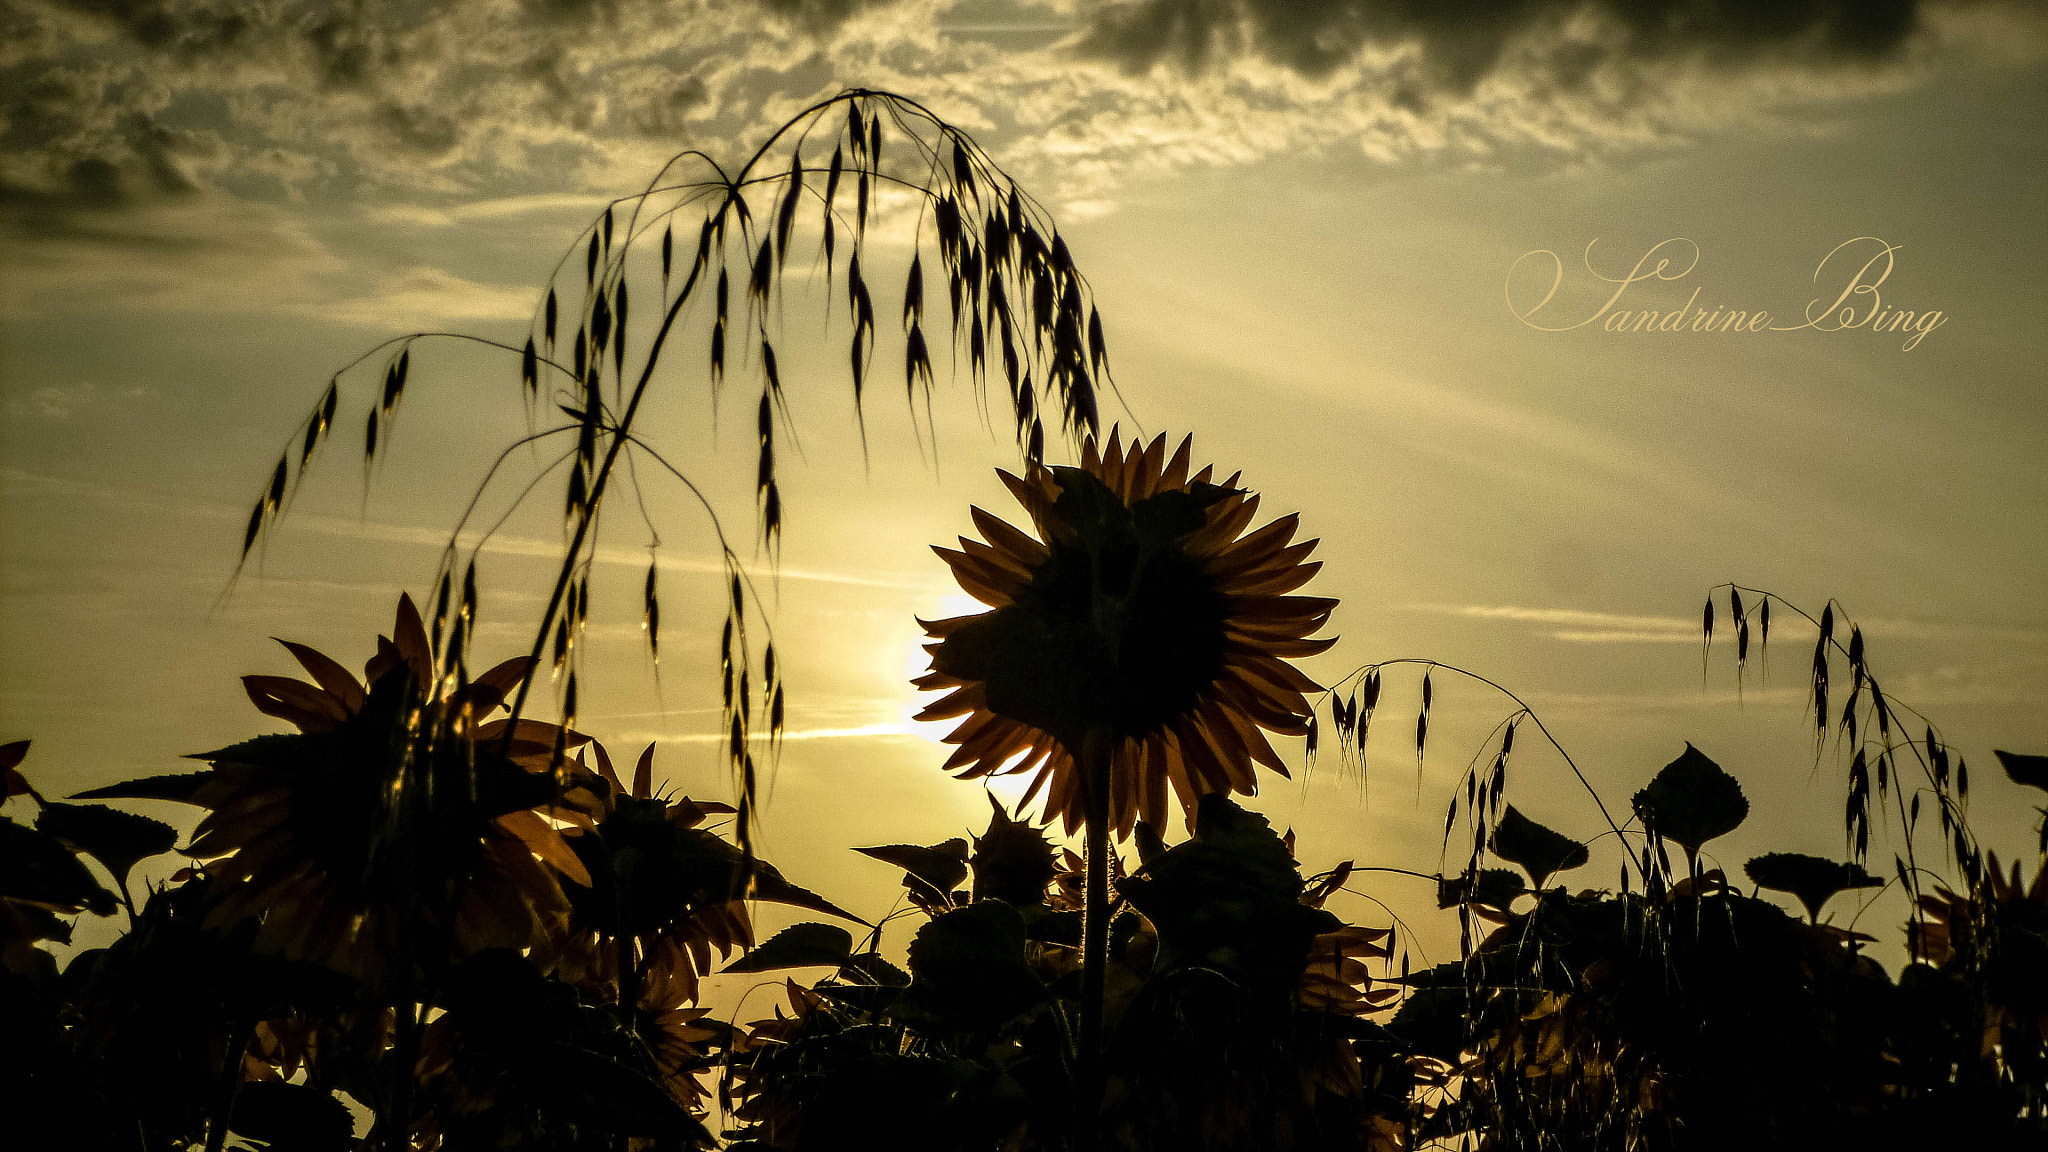 Photograph Here comes the sun ! by Sandrine Bing on 500px